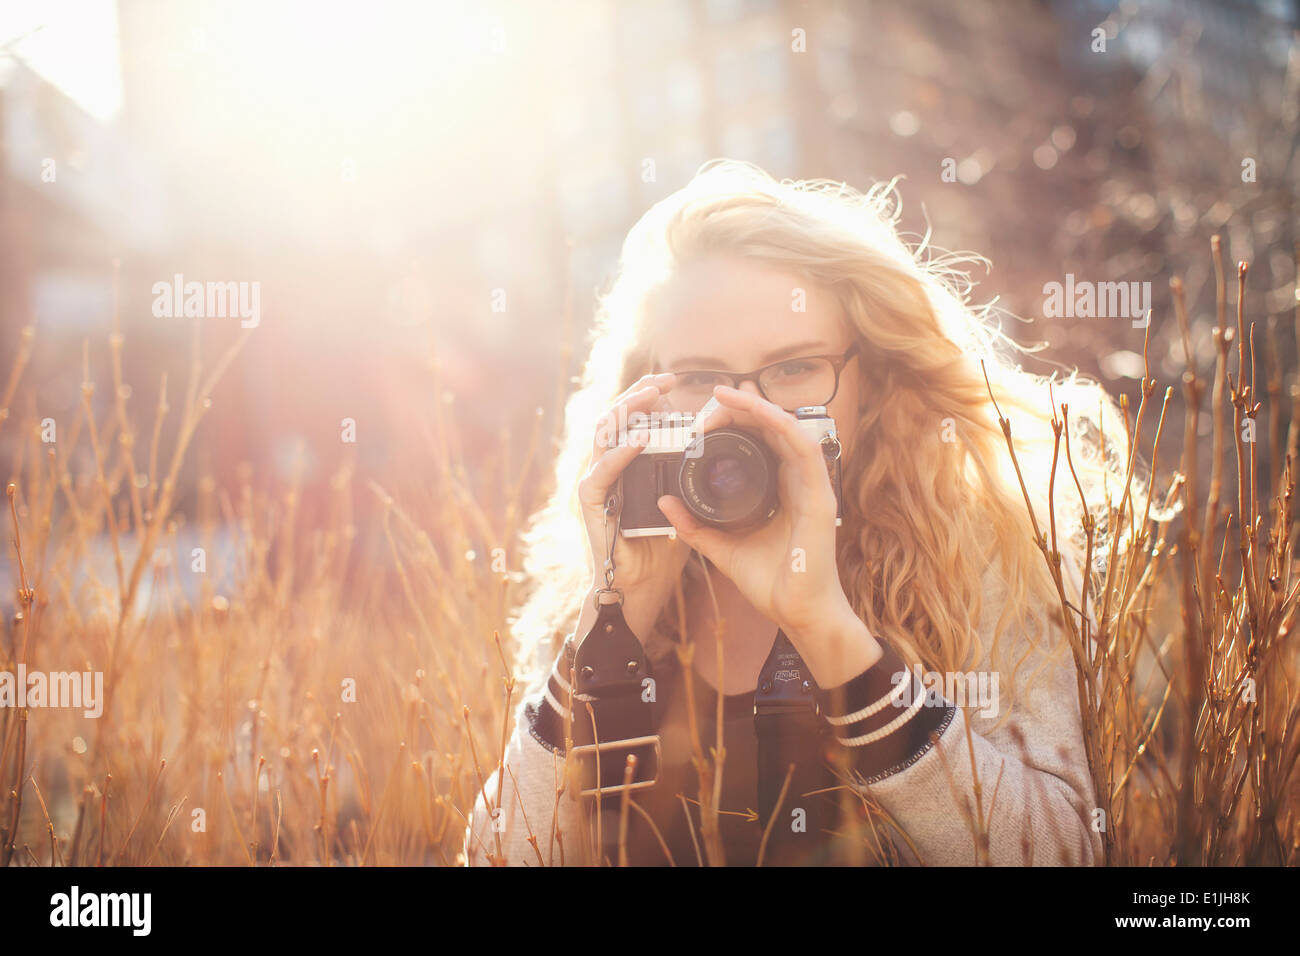 Young woman taking photograph - Stock Image